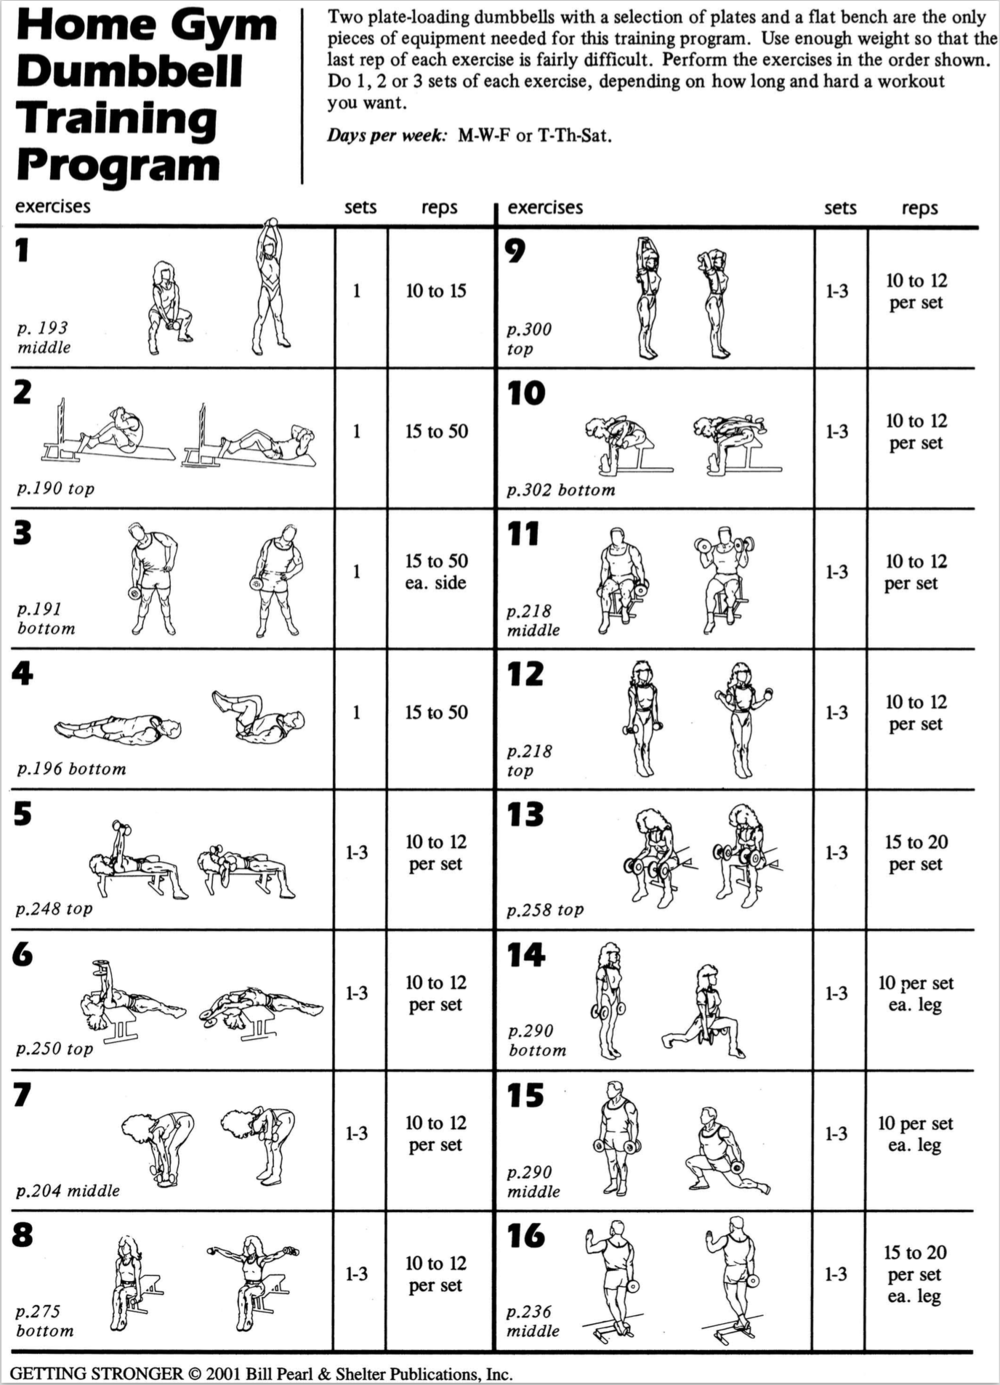 CLICK TO DOWNLOAD A PRINTABLE PDF Dumbbell workout